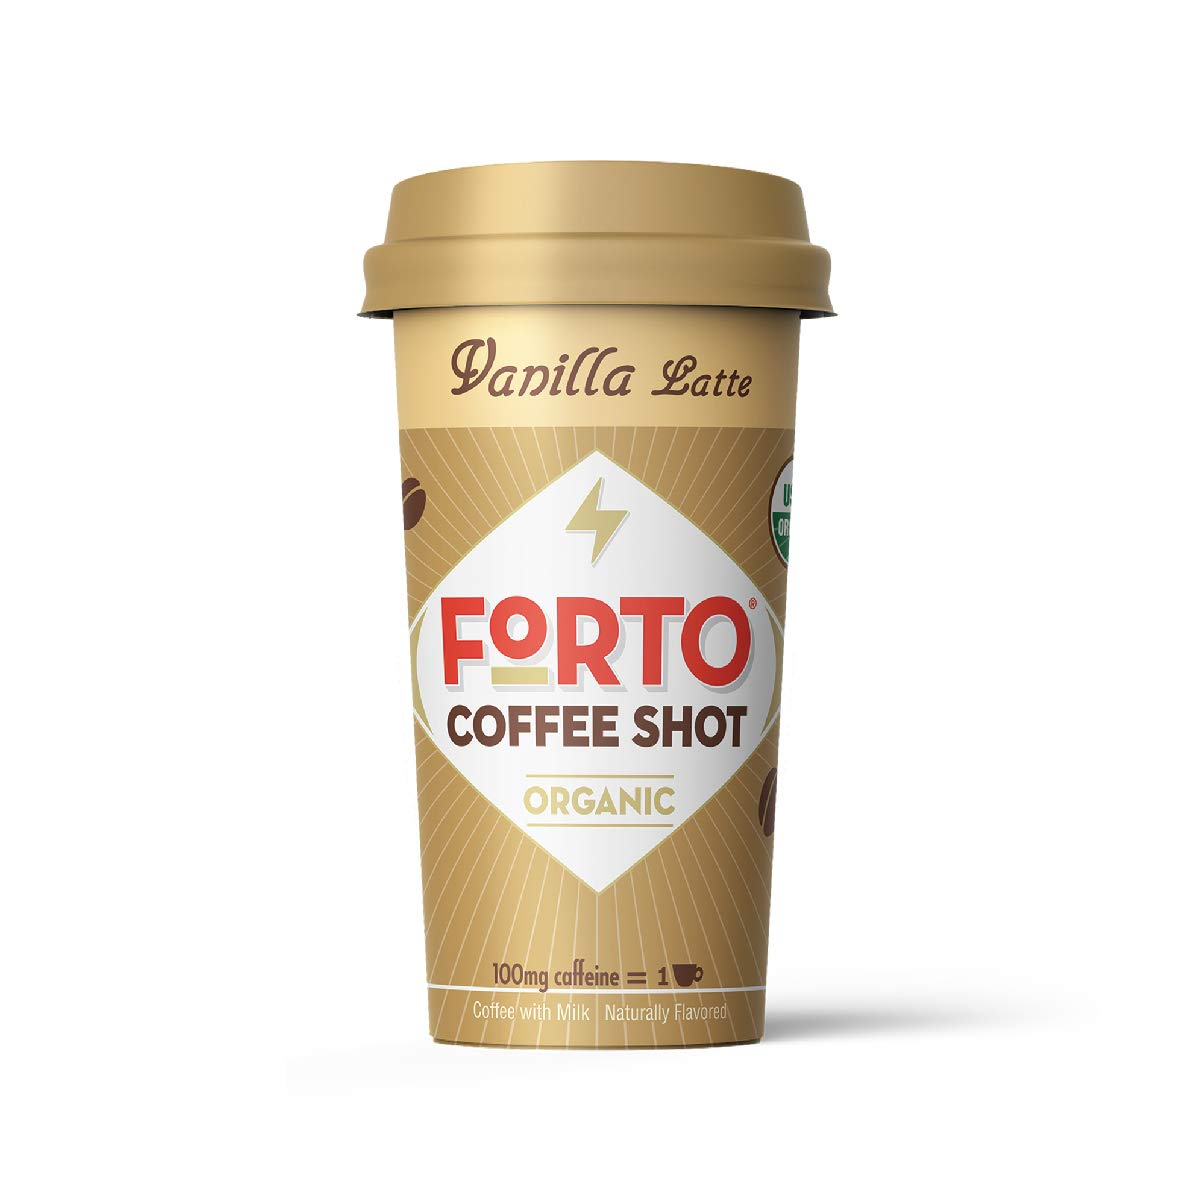 FORTO Coffee Shots - 100mg Caffeine, Vanilla Latte, Ready-to-Drink on the go, Cold Brew Coffee Shot - Fast Coffee Energy Boost, 12 Pack by FORTO